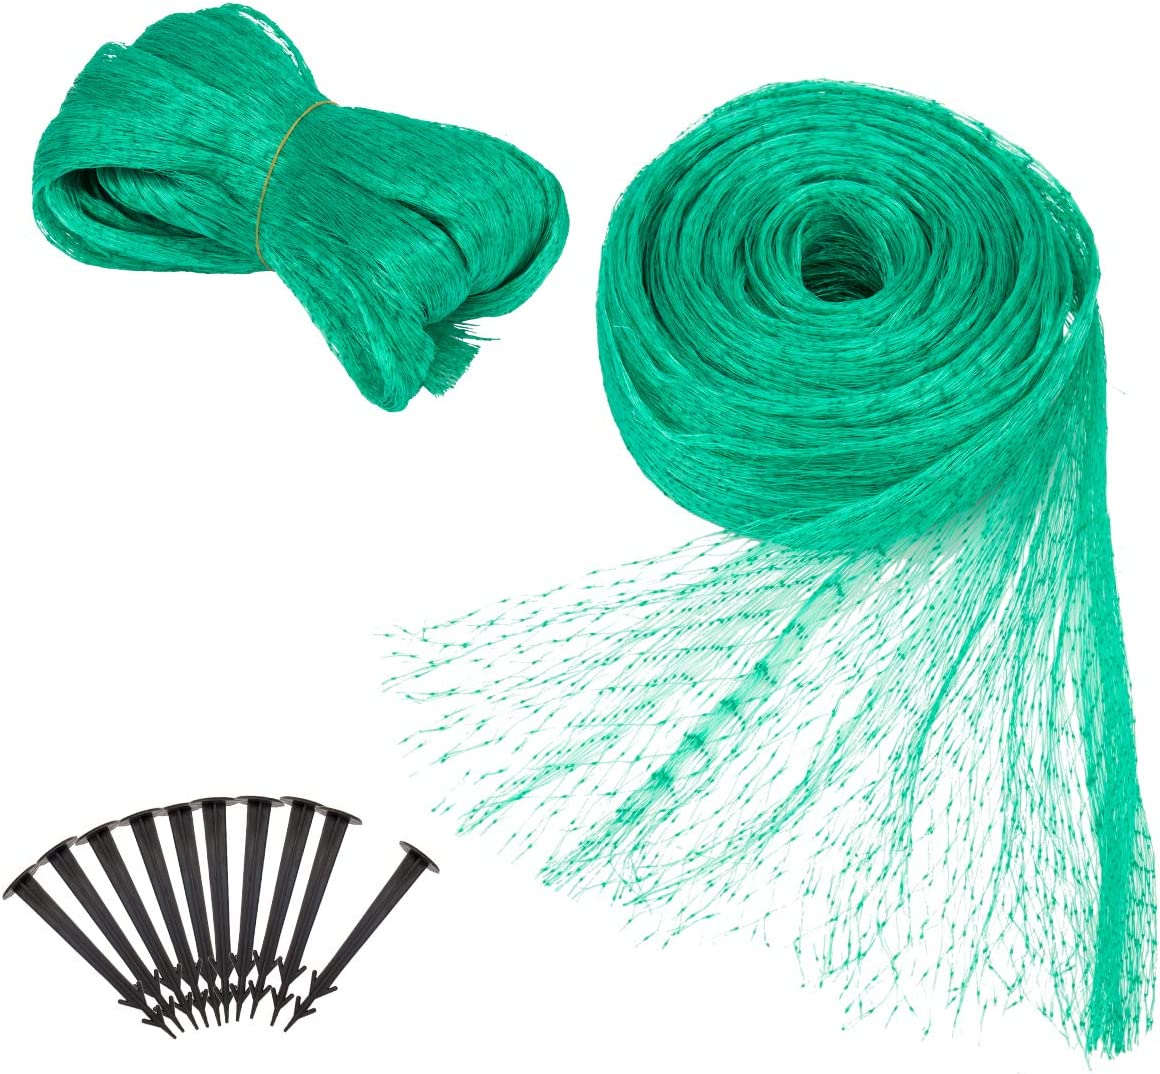 Apipi 2 Pack 13Ft x 33 Ft Anti Bird Netting -Green Anti Bird Protection Net Mesh – Garden Plant Netting to Protect Vegetable Fruit from Rodents Birds Deer and Other Pests